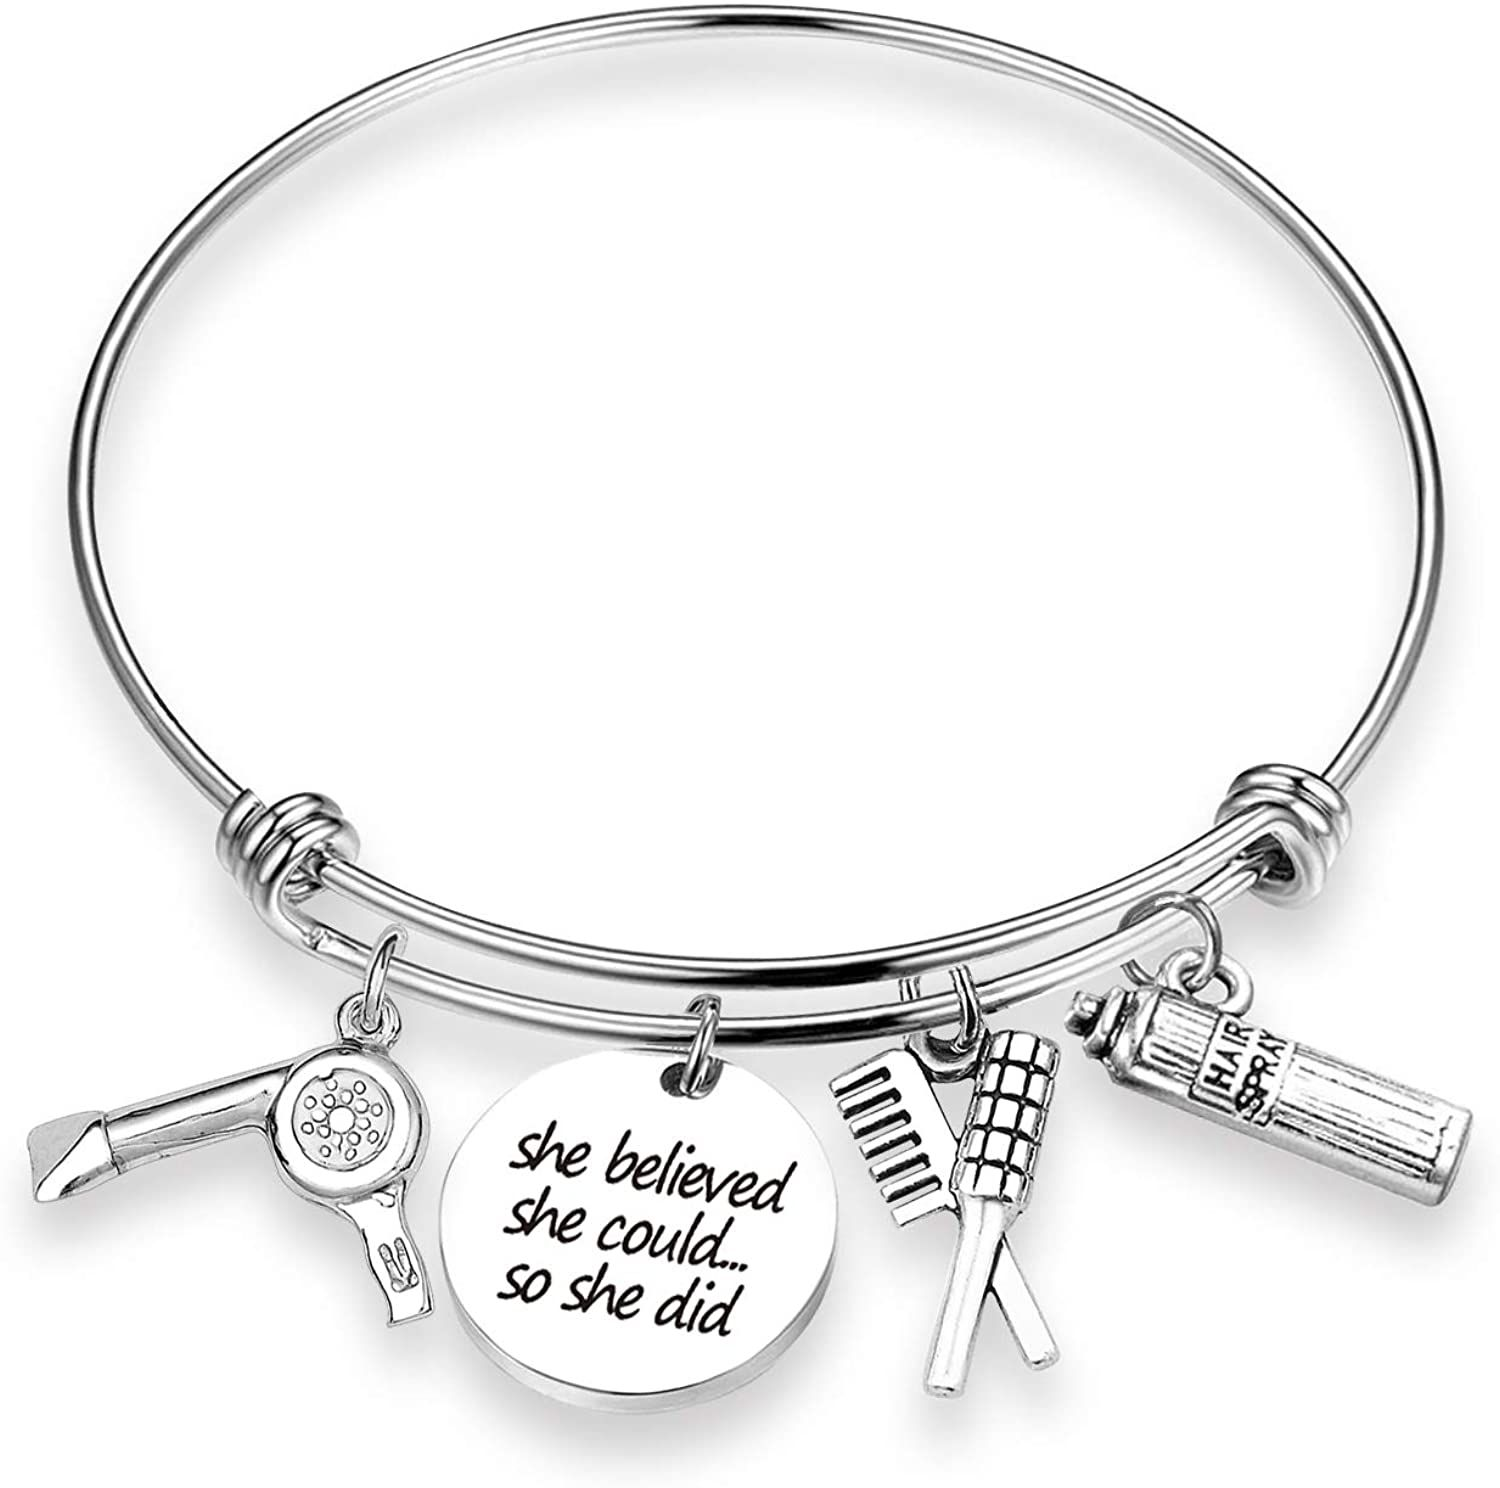 Eigso hairdresser gift hairdresser keychain bracelet she believed she could appreciation employee her